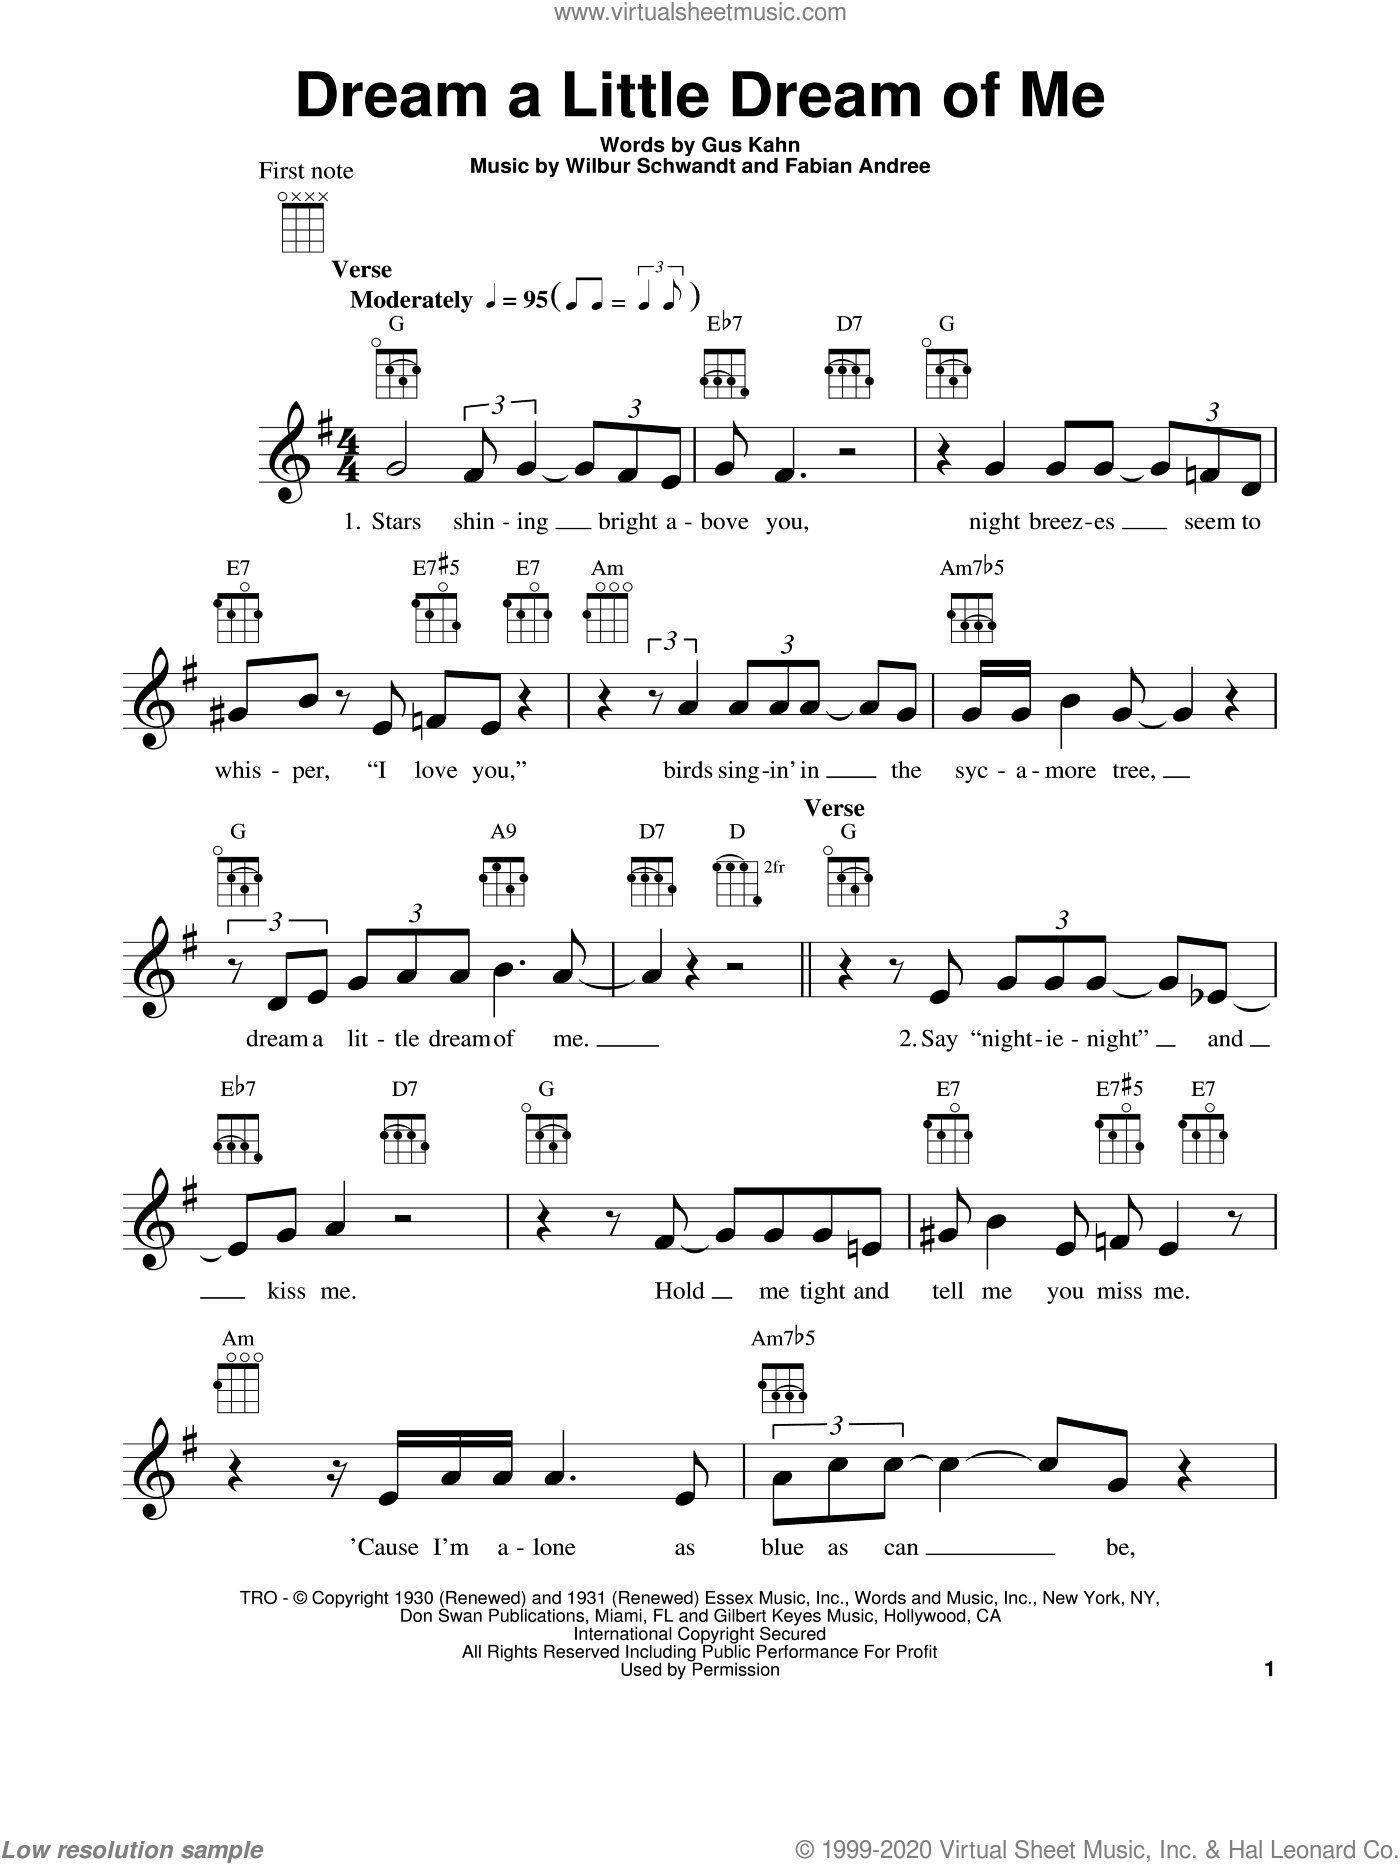 Dream A Little Dream Of Me sheet music for ukulele by Wilbur Schwandt